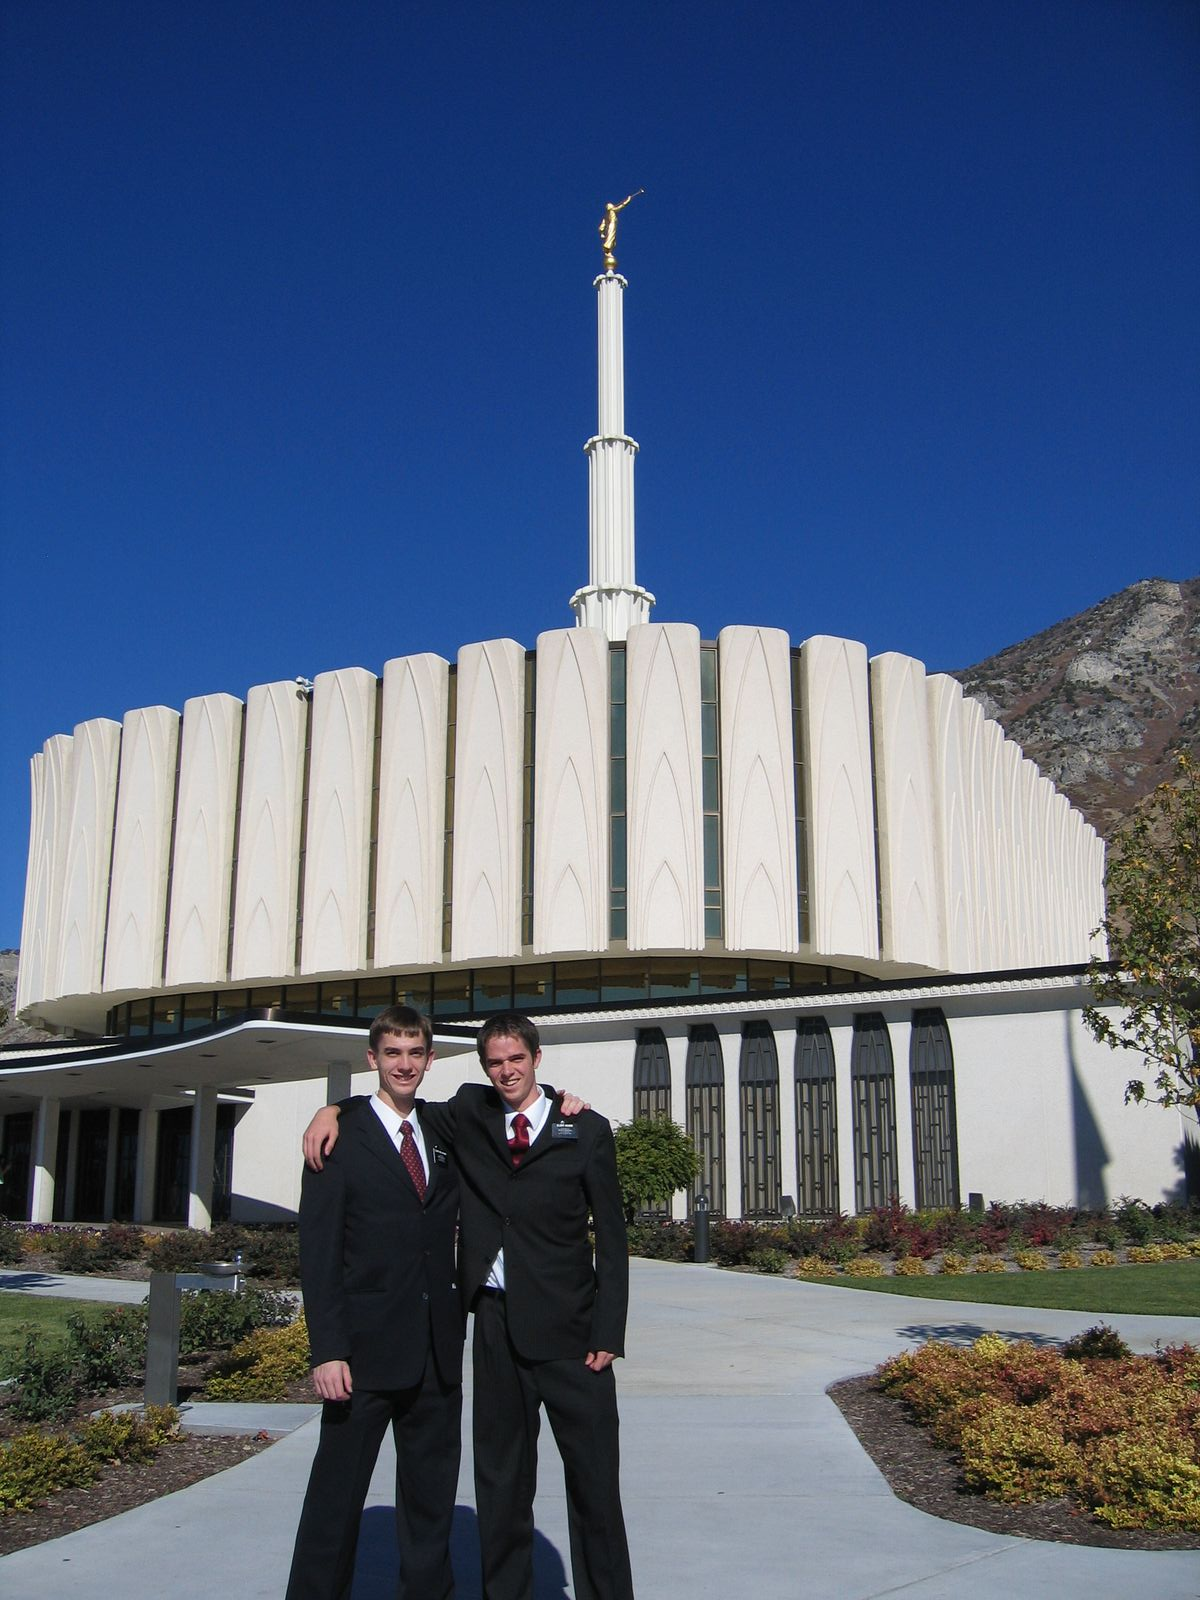 Elders with a mission at the Provo Temple